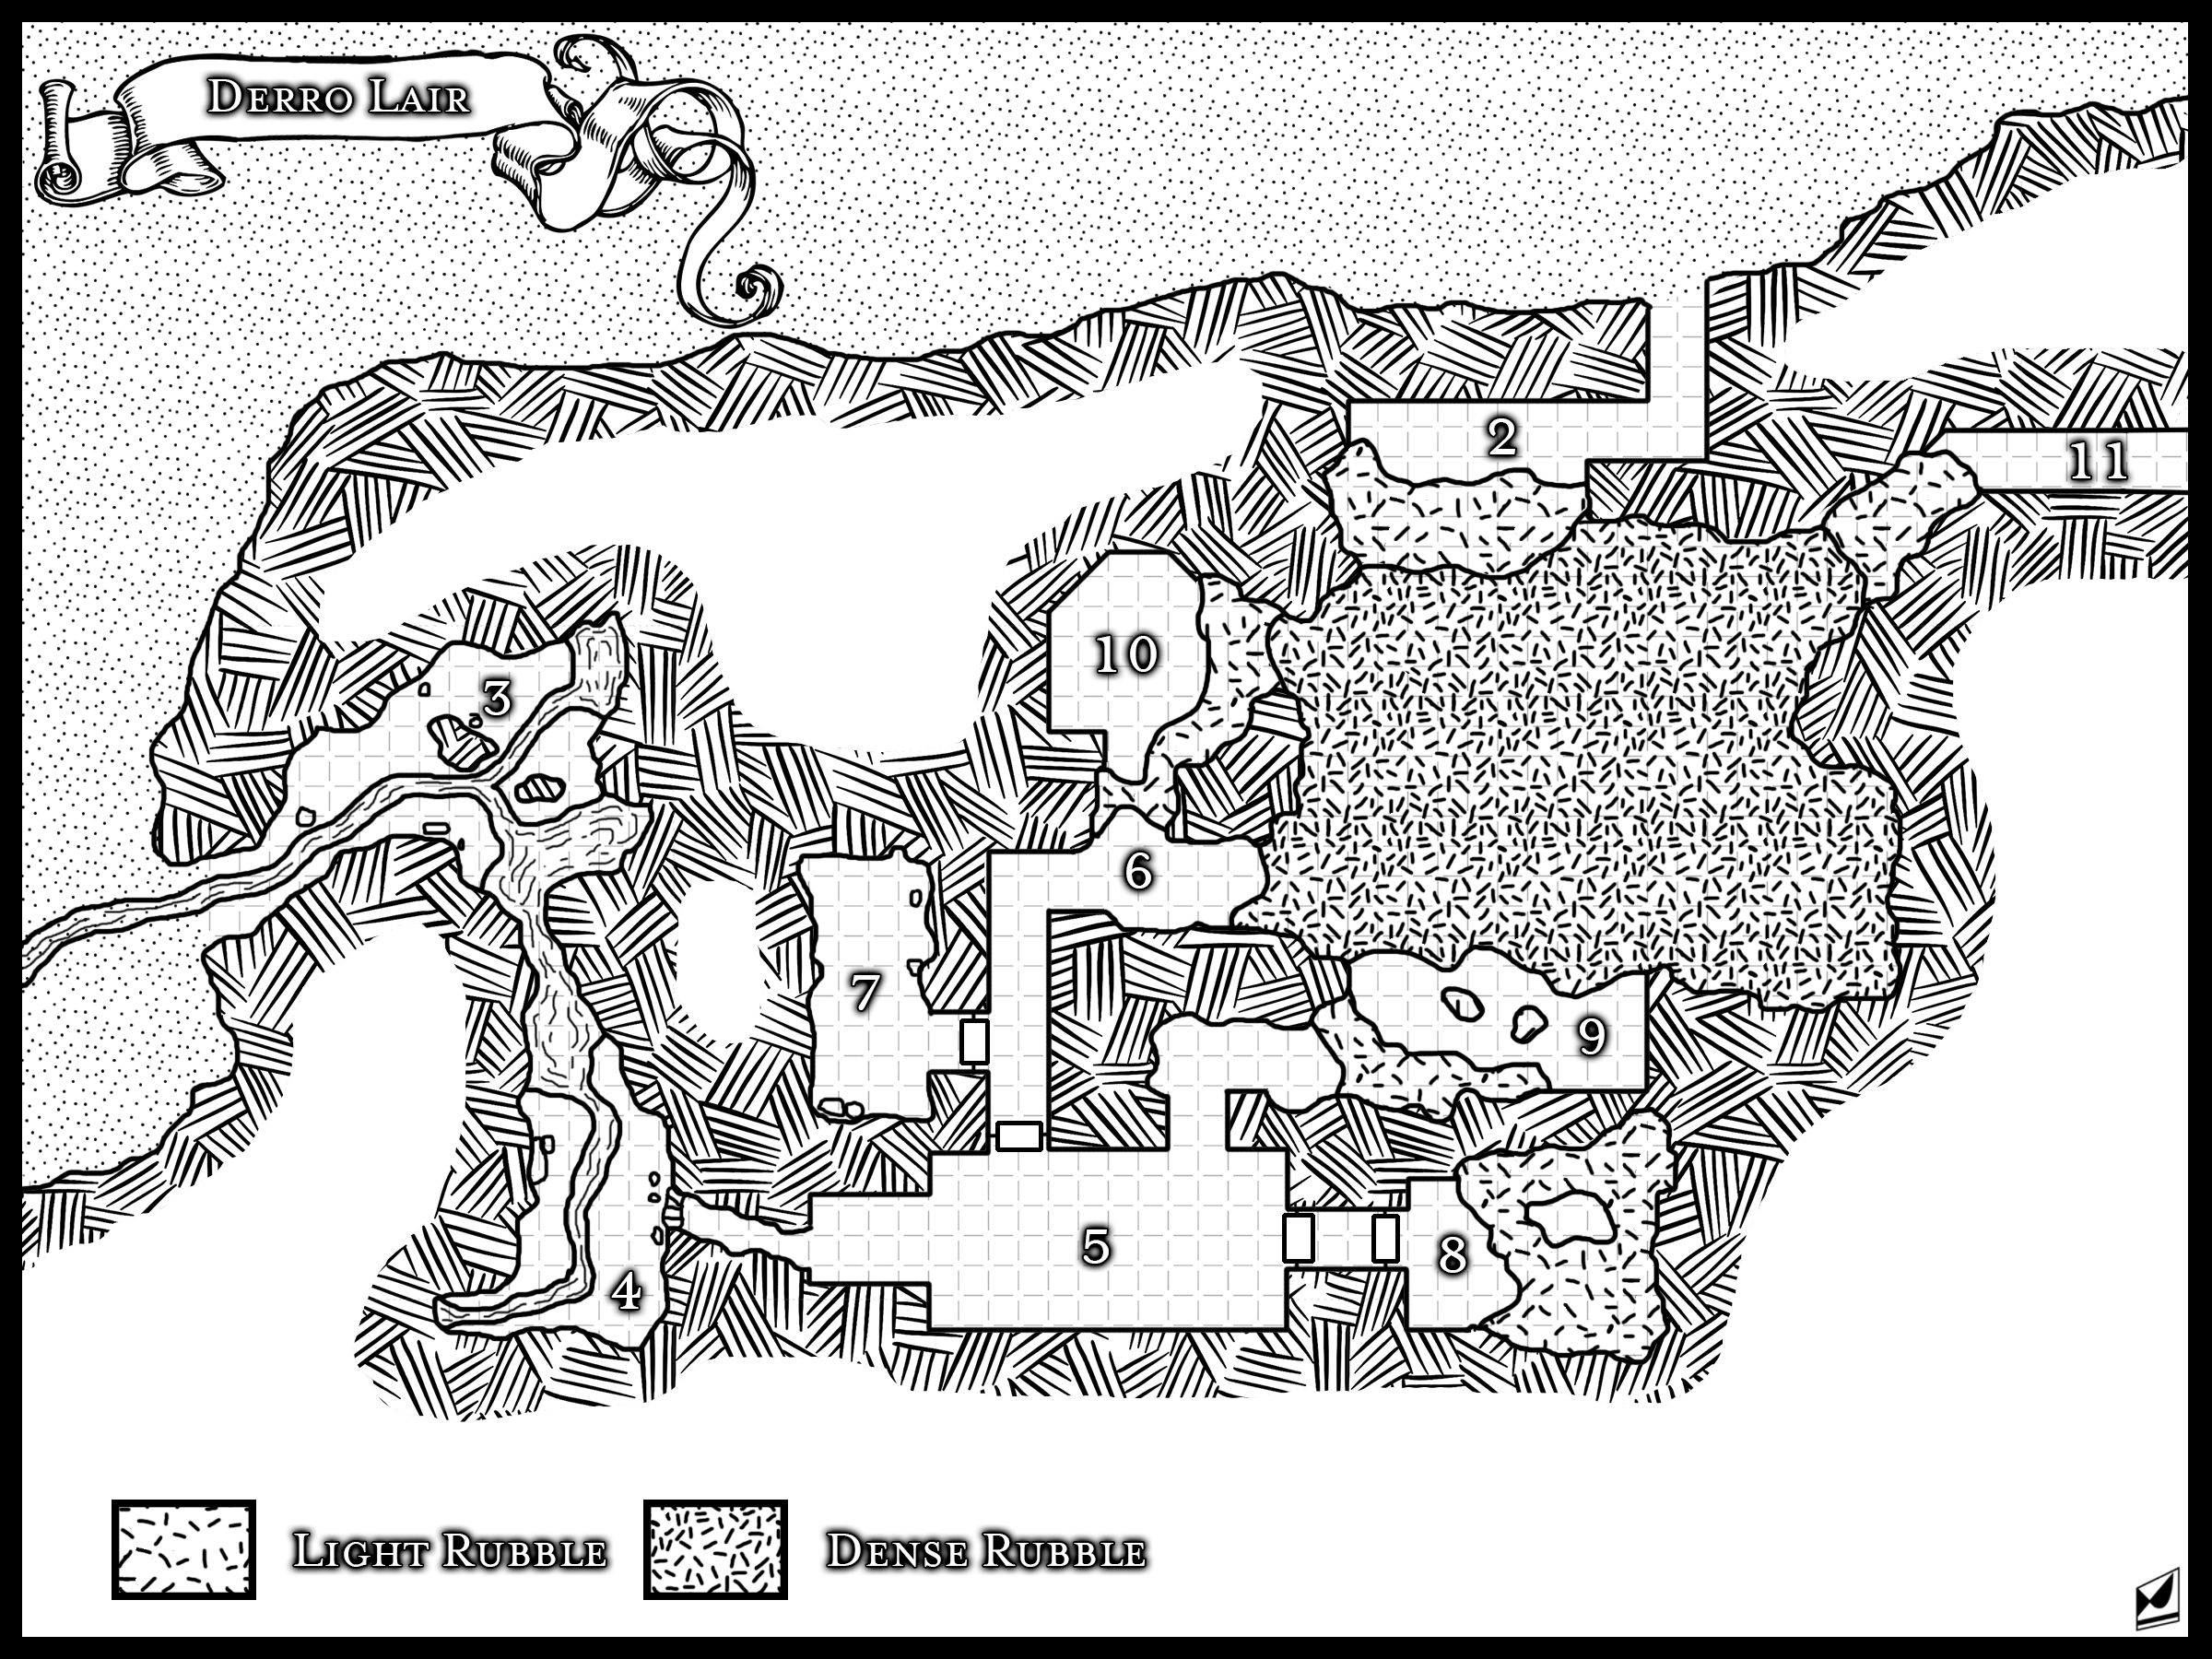 10 Perfect Dungeons And Dragons Adventure Ideas a medium sized cave lair designed for dungeons and dragons based on 2020